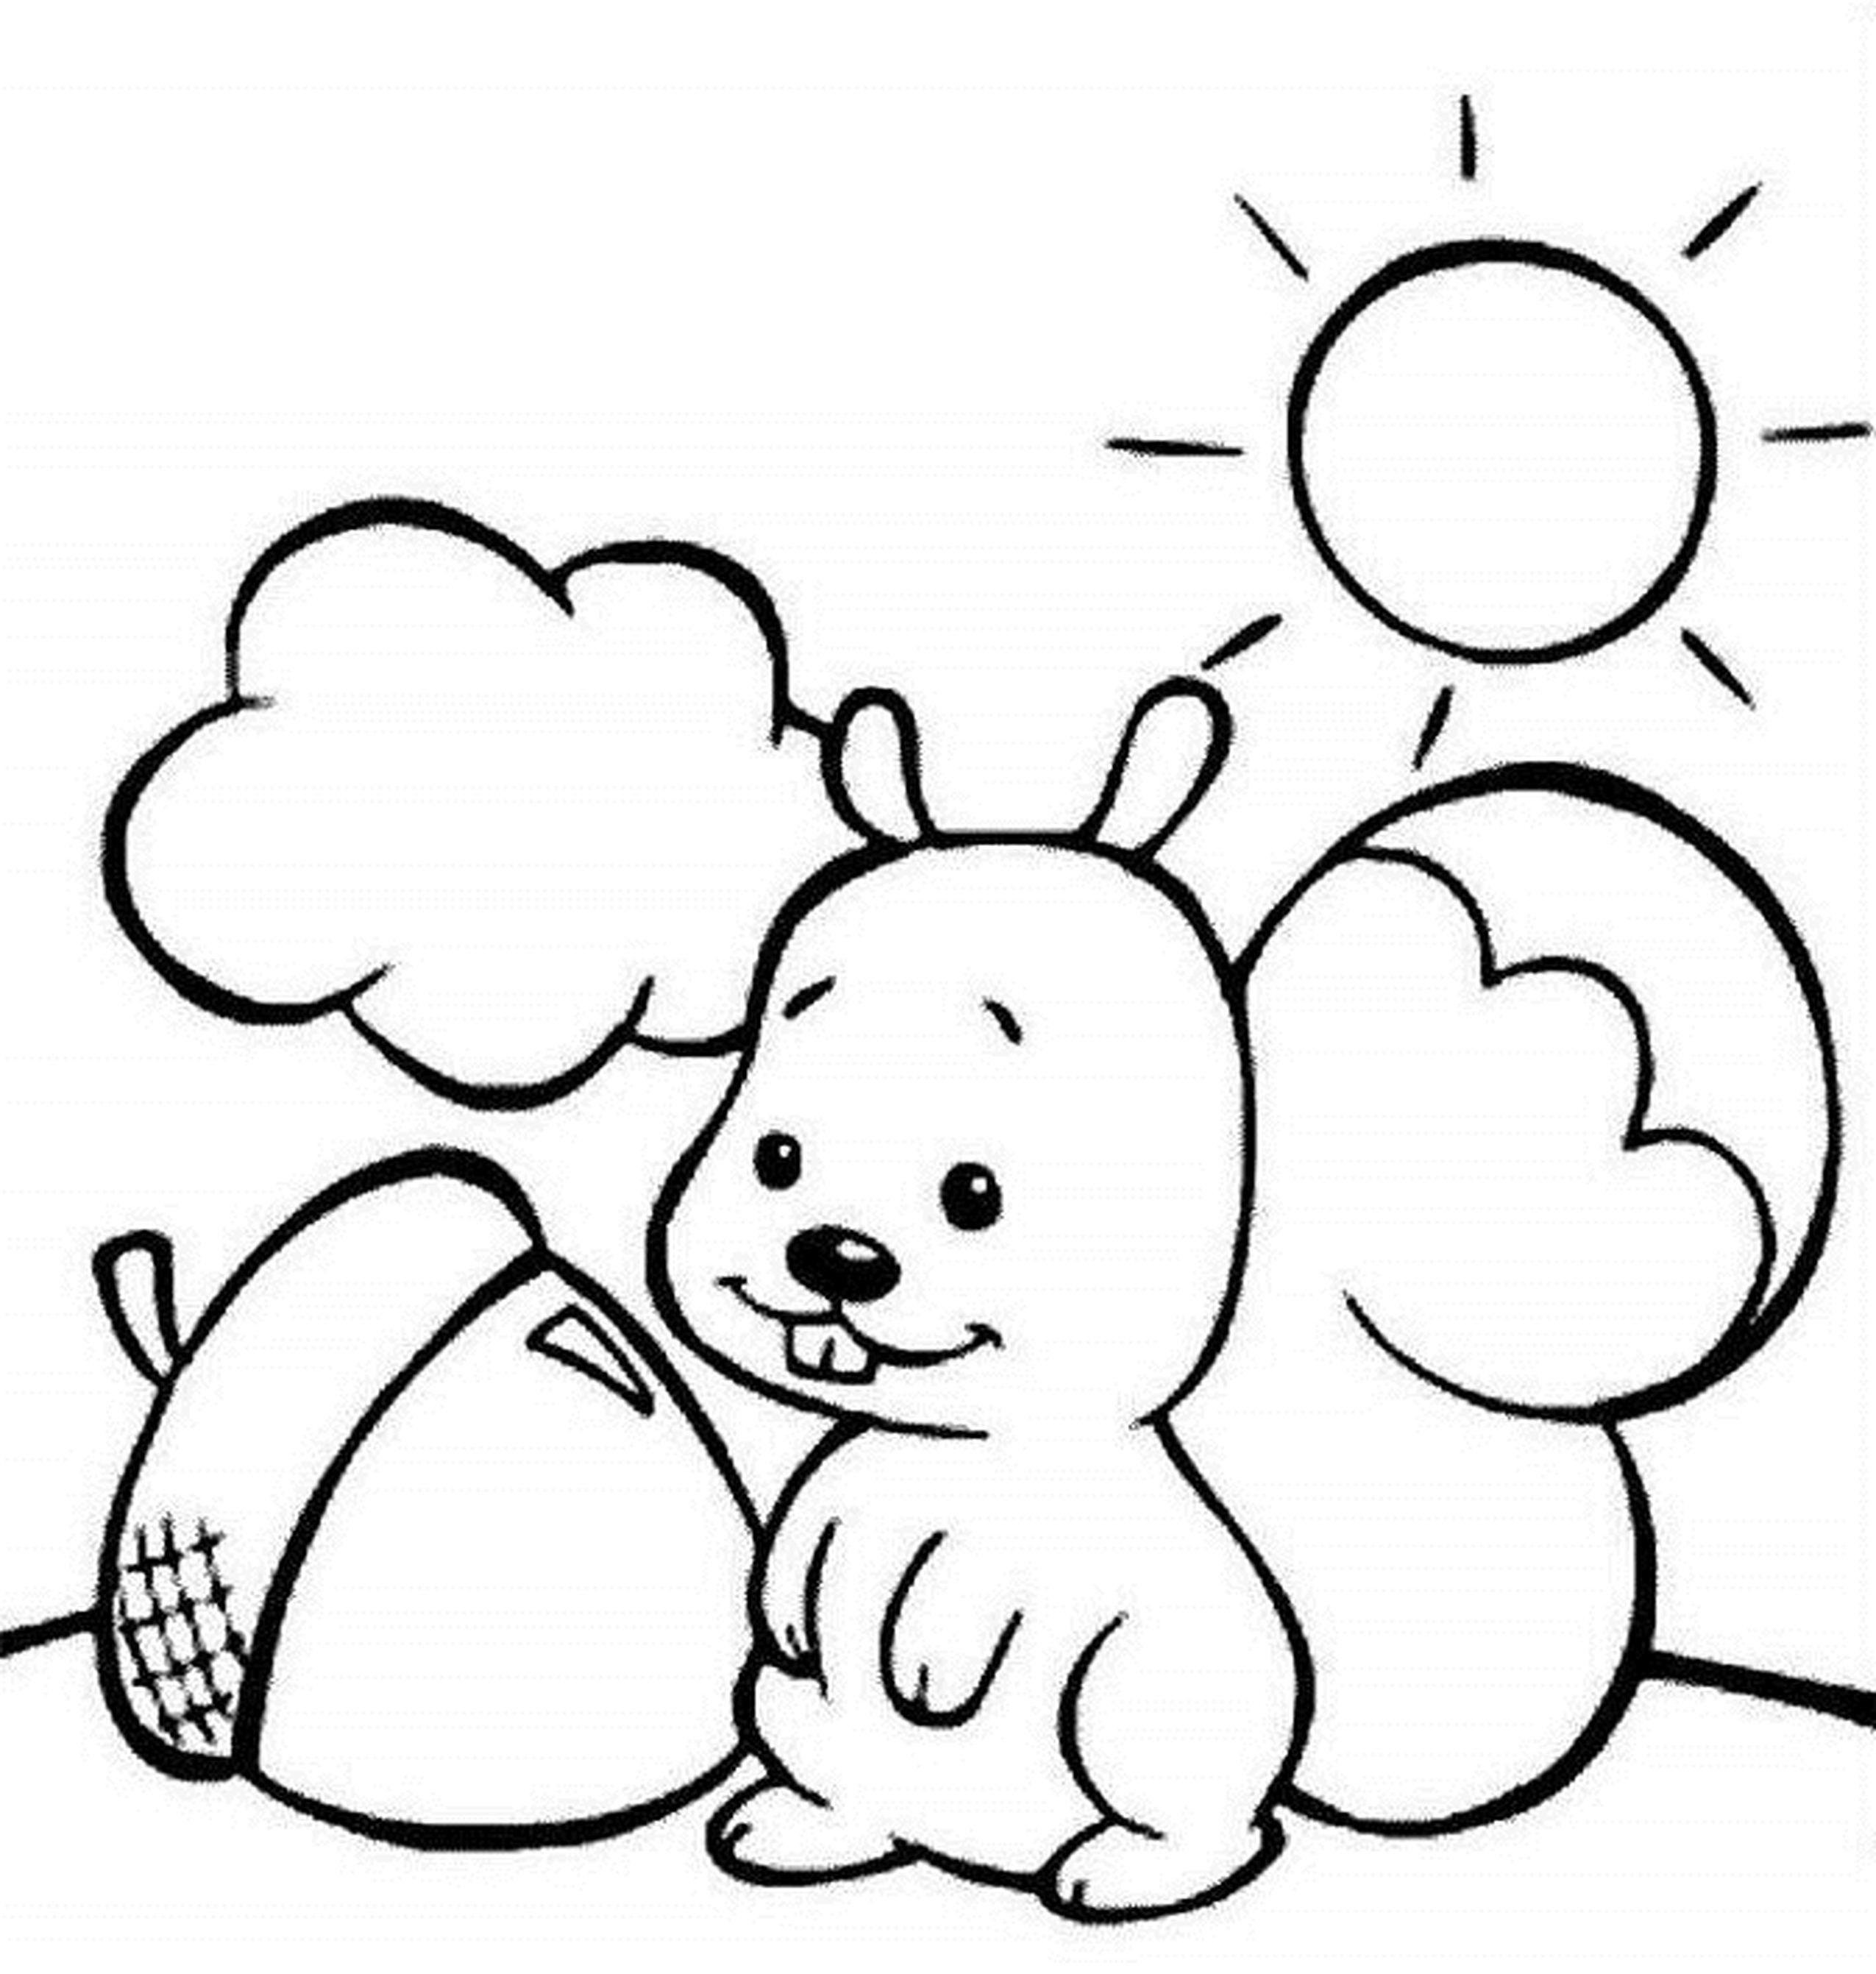 Pdf Coloring Pages For Kids Coloring Pages Free Printable Pictures Of Flowers Clip Art